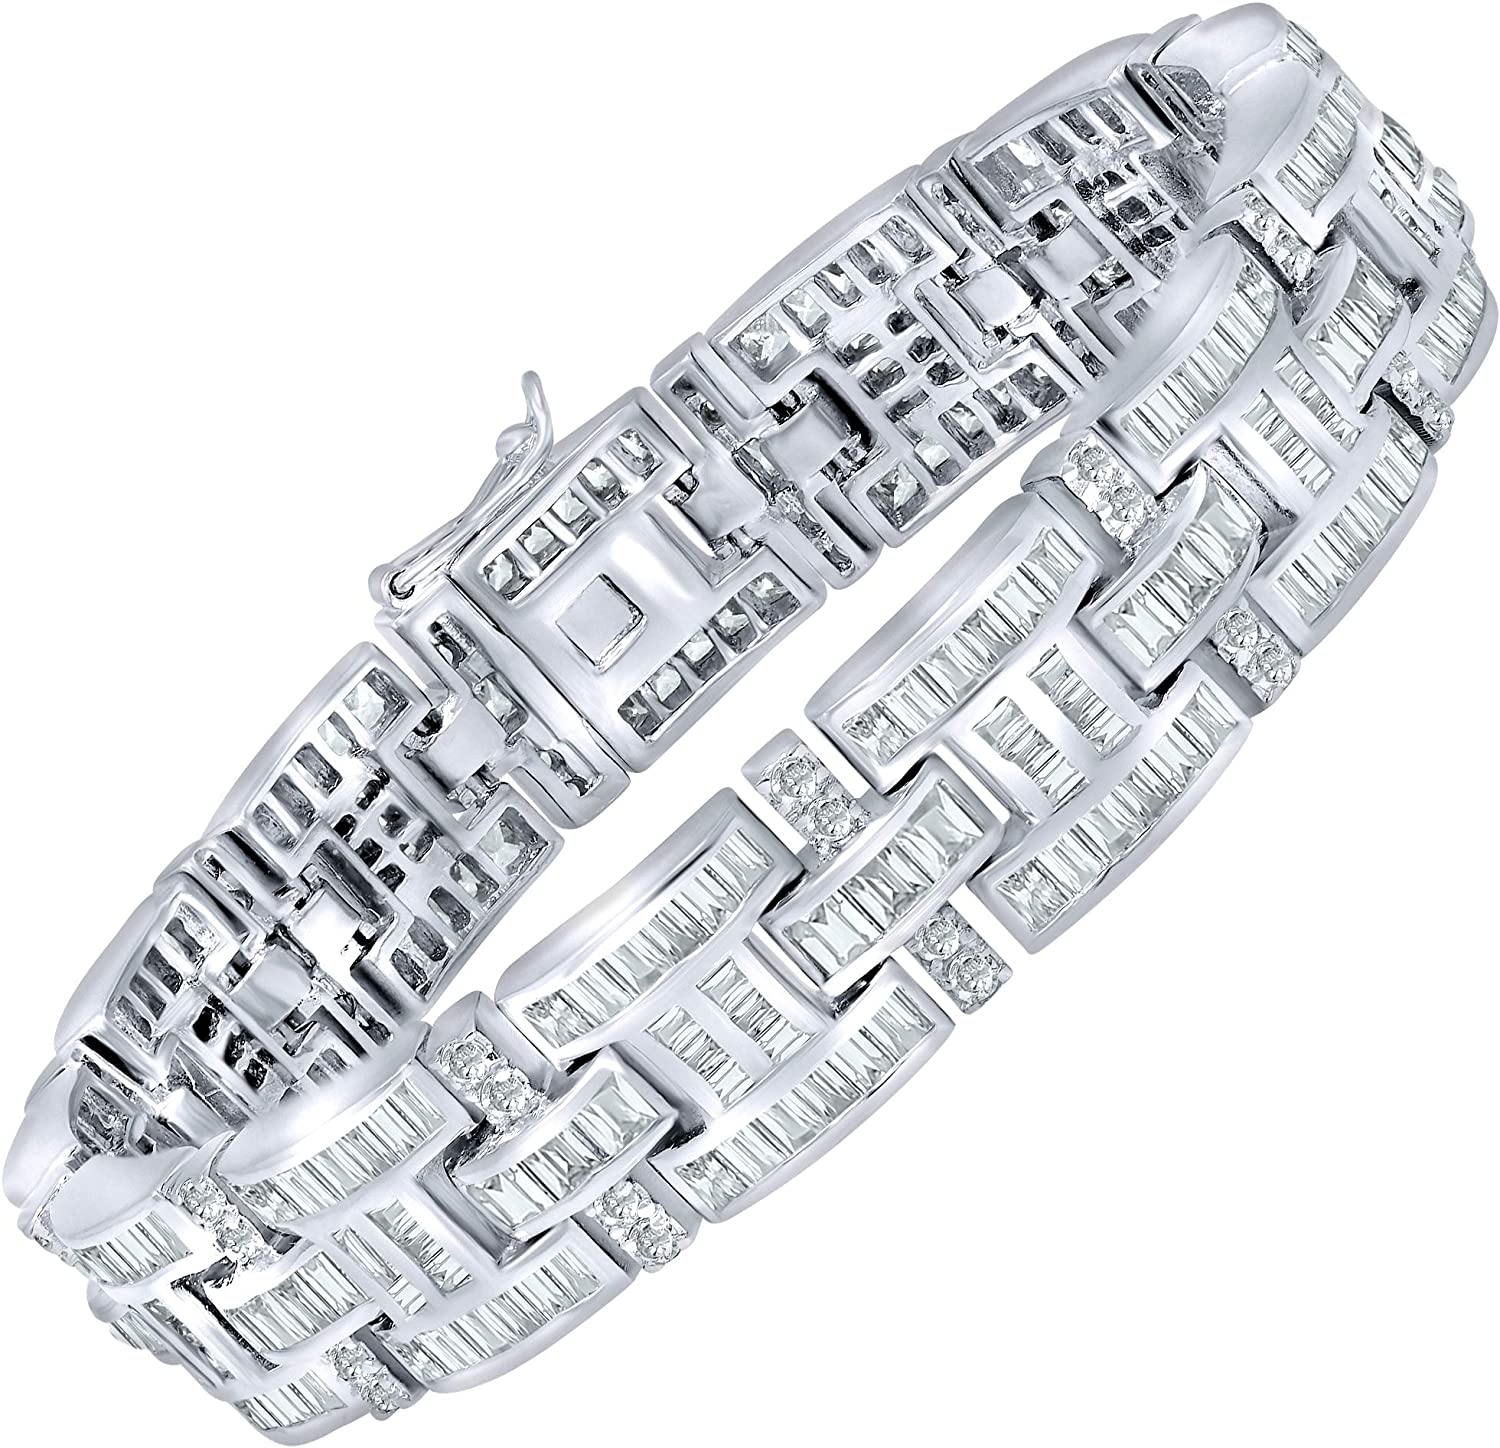 """[2-5 Days Delivery] Men's Elegant Sterling Silver .925 Bracelet with 298 Highest Quality Channel-Set Simulated Diamond Princess-Cut Cubic Zirconia (CZ) Stones, Secure Box Lock, Platinum Plated. Available in sizes 8"""" 9"""""""